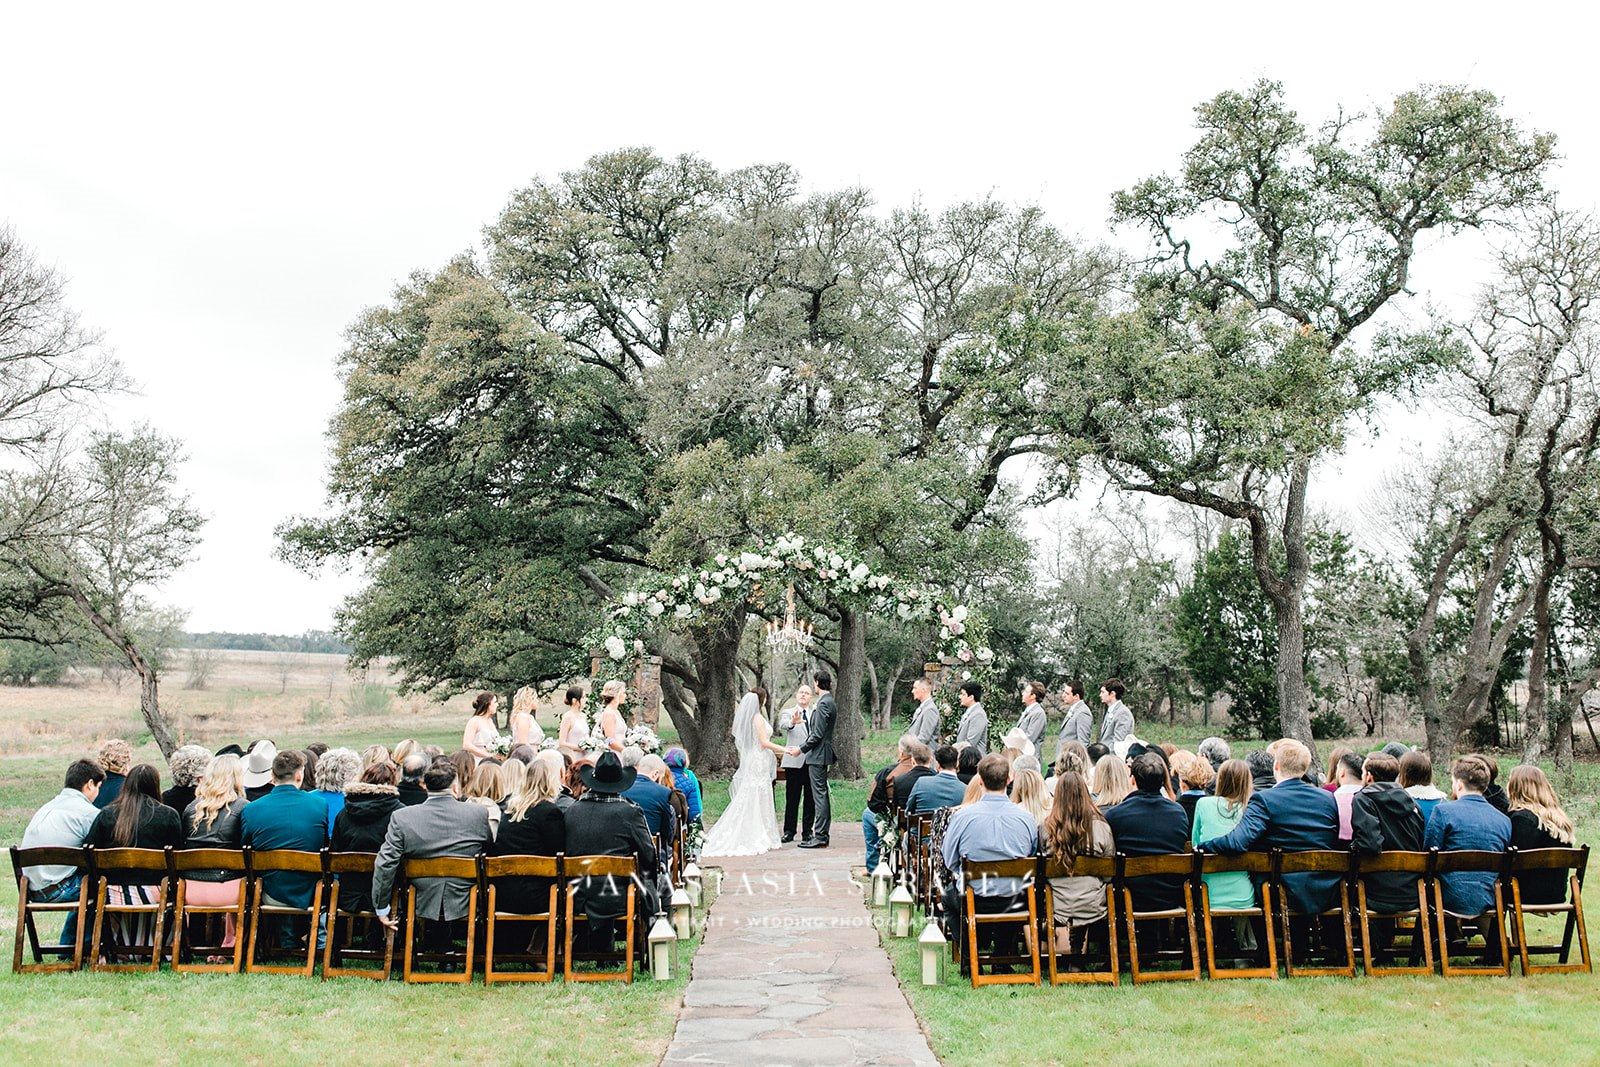 outdoor wedding ceremony in Texas